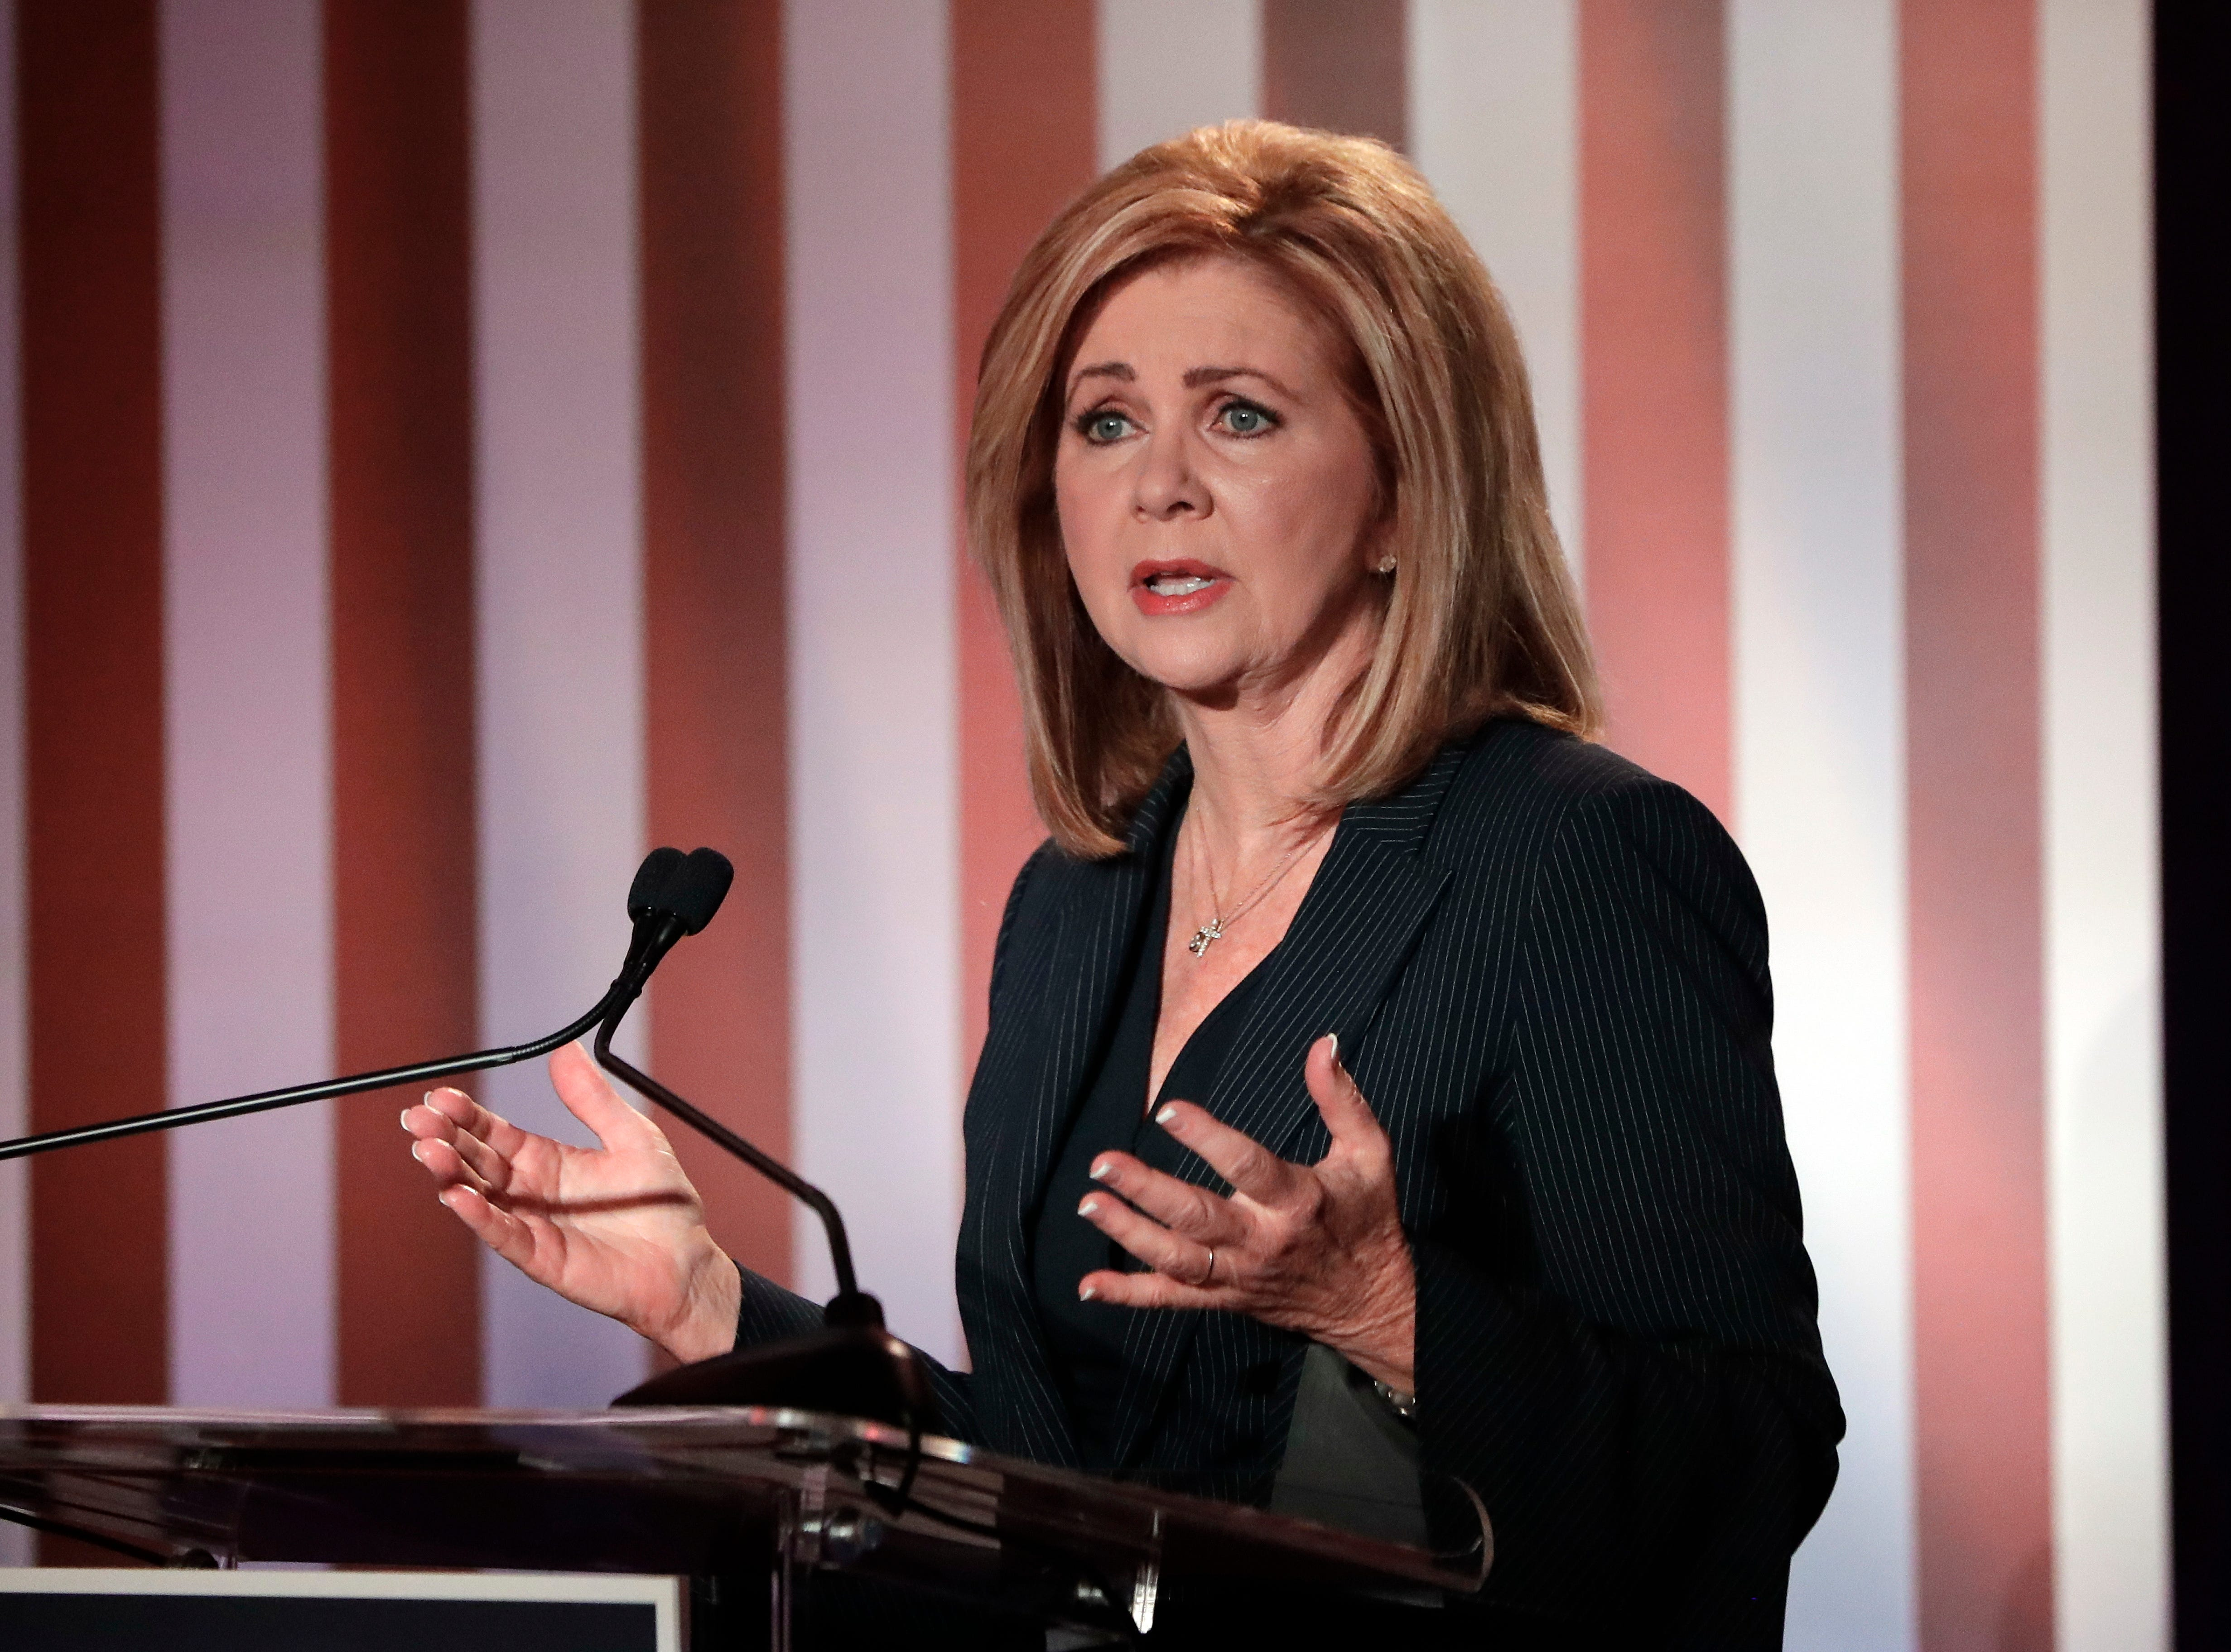 Republican U.S. Rep. Marsha Blackburn speaks during the 2018 Tennessee U.S. Senate Debate at The University of Tennessee Wednesday, Oct. 10, 2018, in in Knoxville, Tenn.